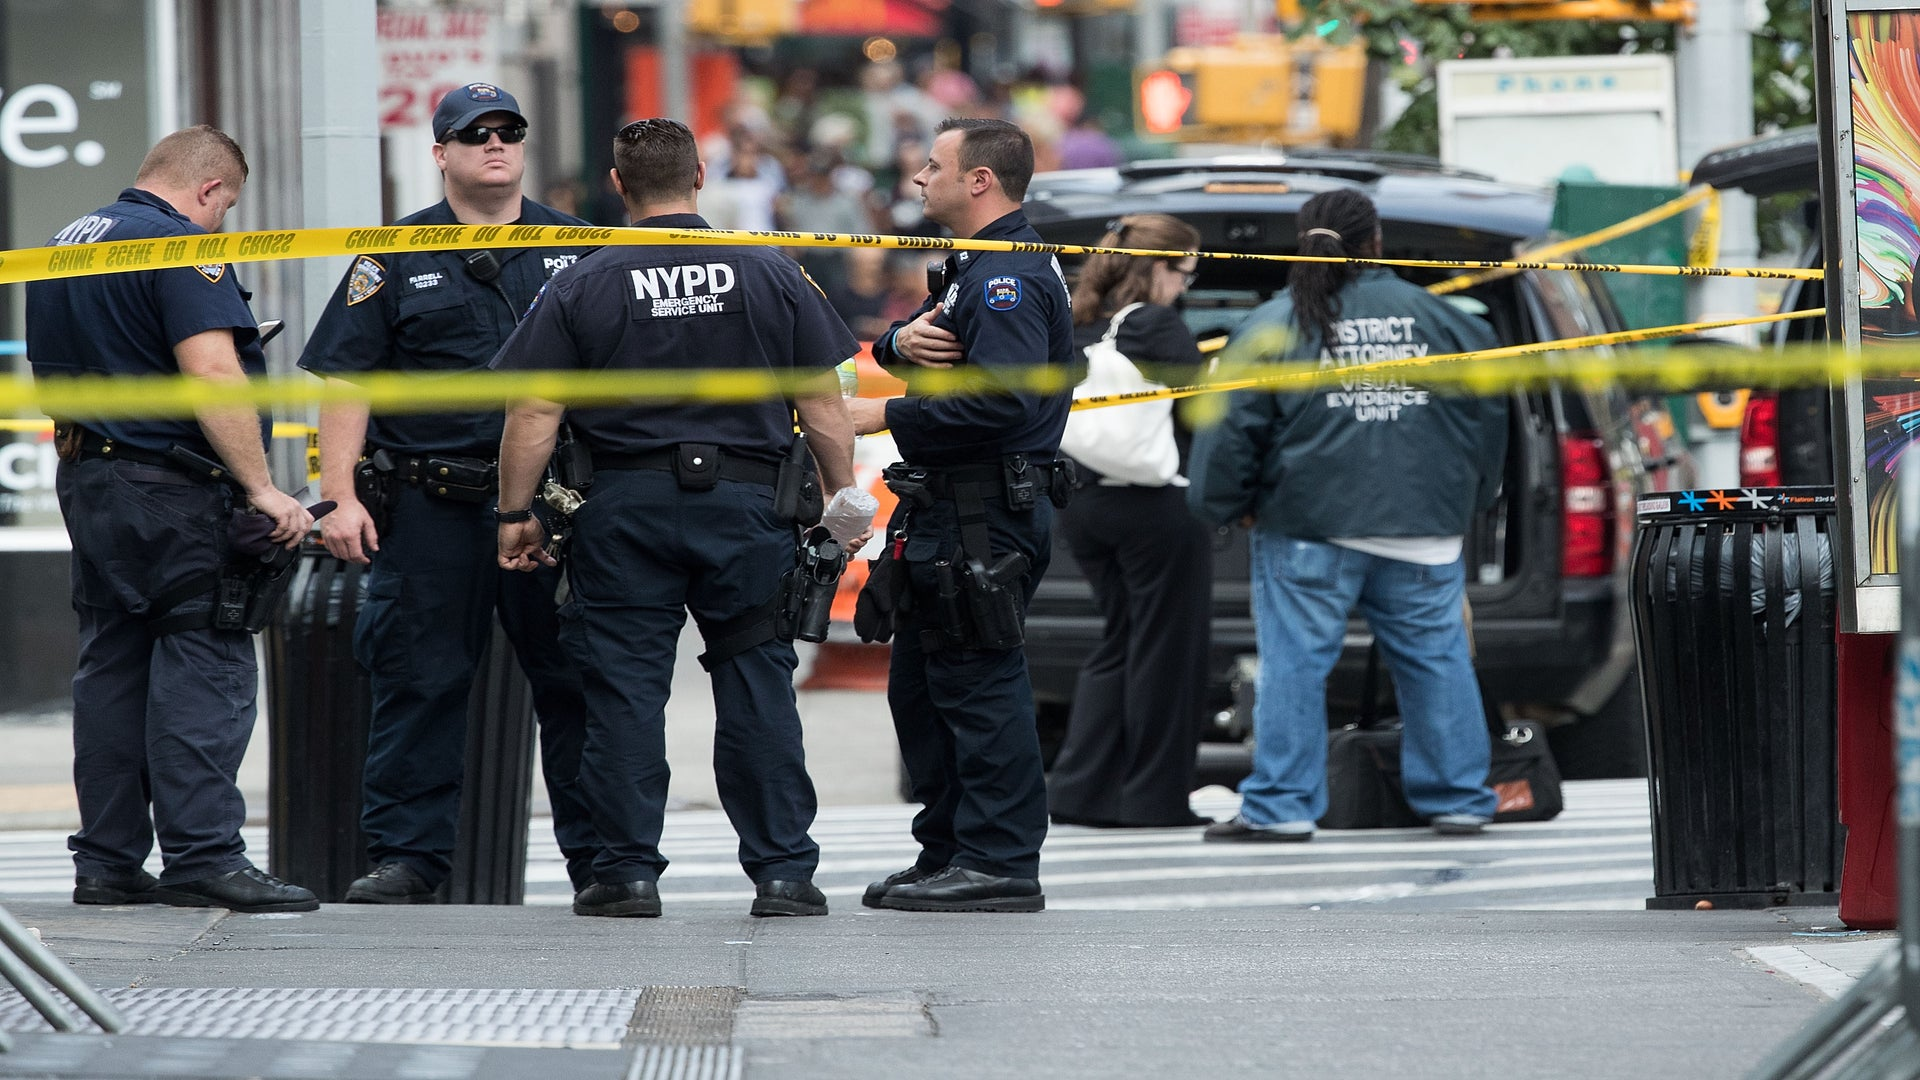 Why Did The NYPD Shoot A Mentally Ill, 66-Year-Old Woman?